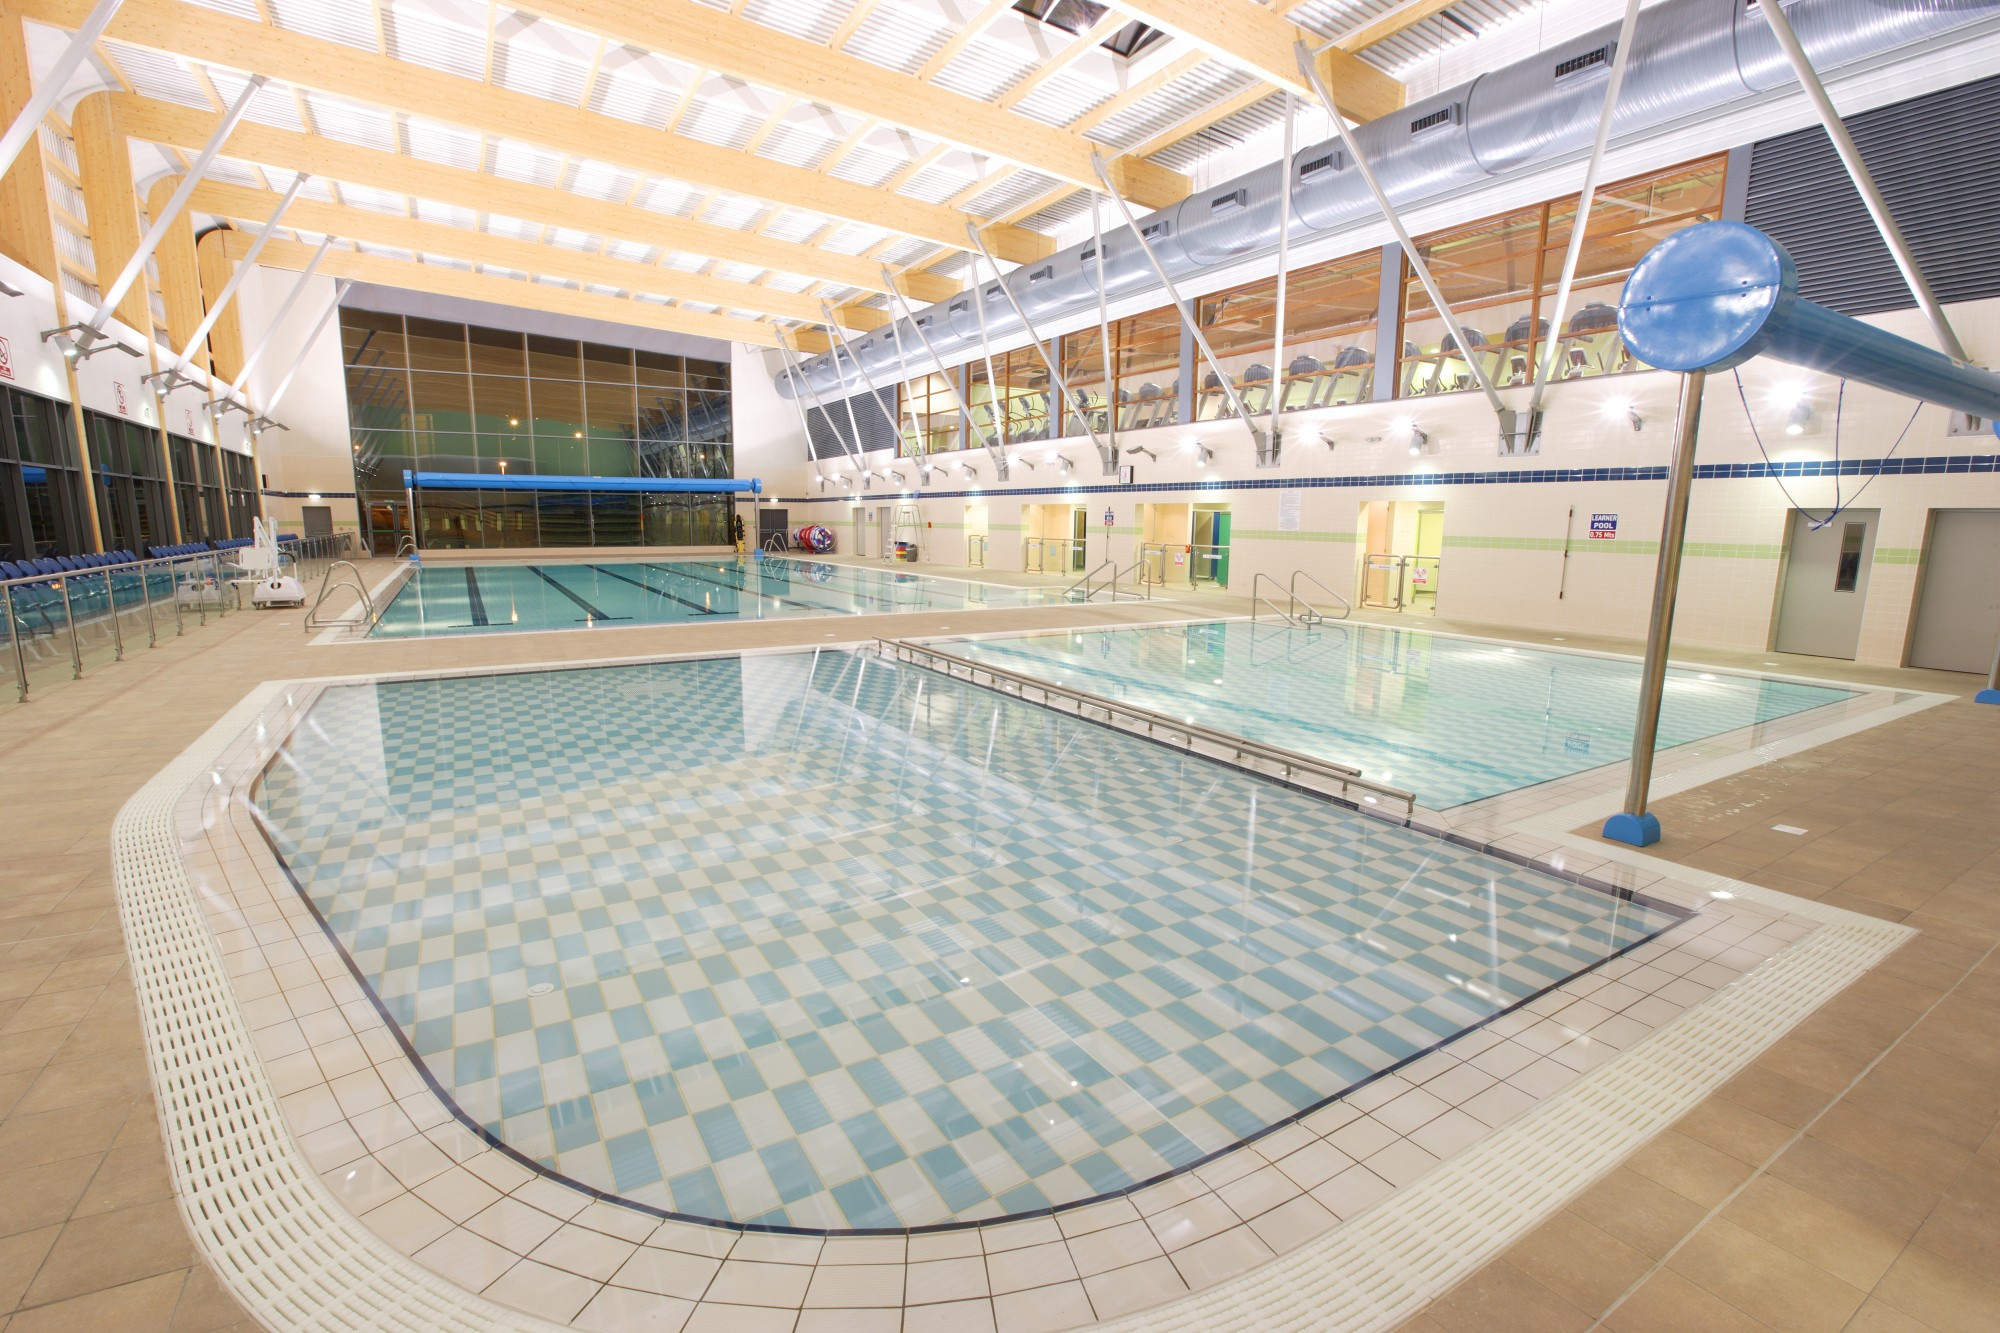 Gallery shoreline leisure - Bray swimming pool and leisure centre ...